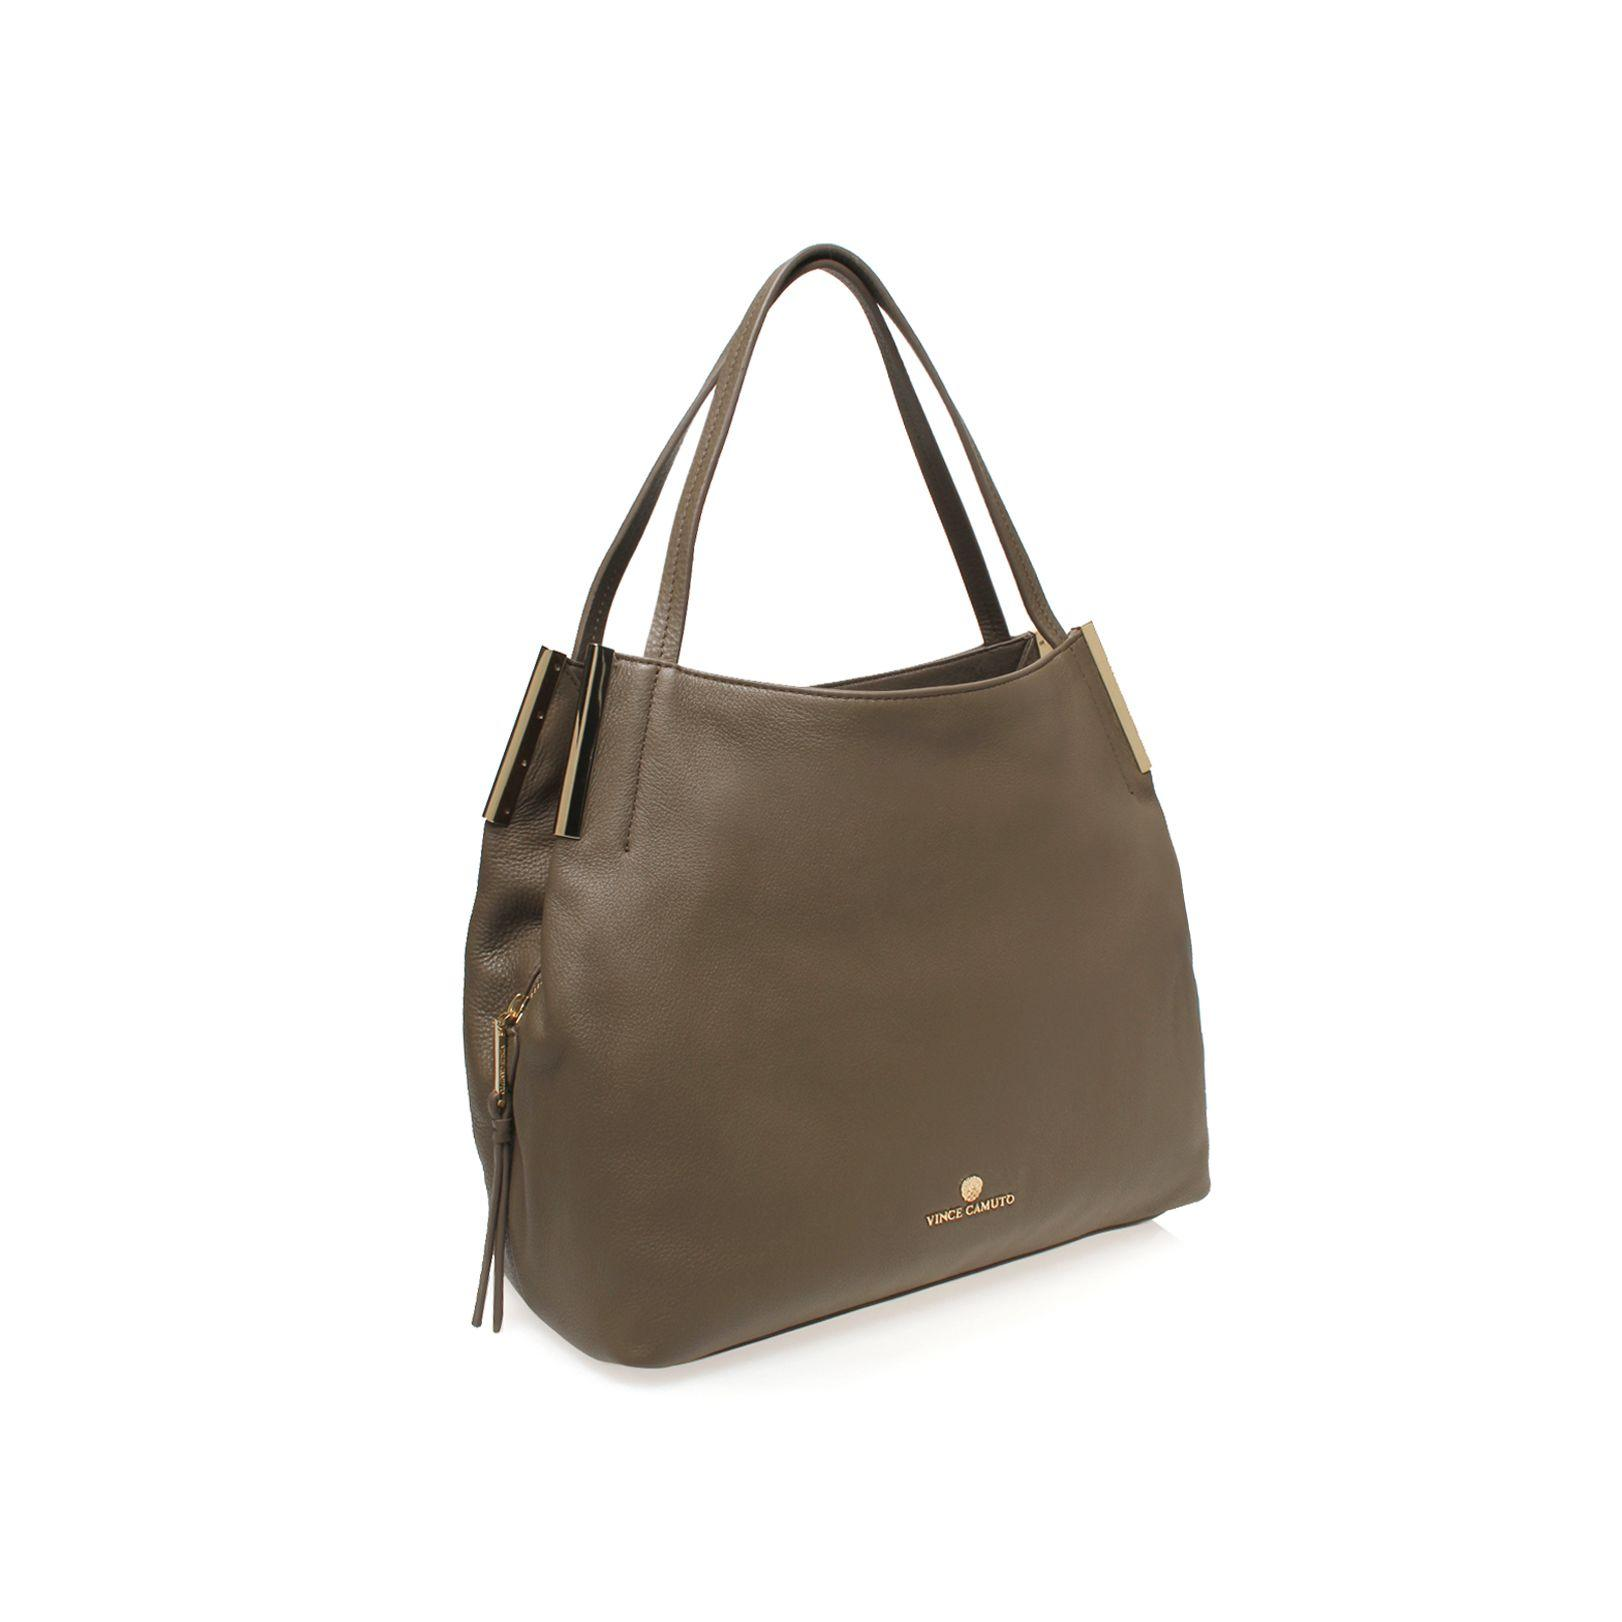 Vince Camuto Tina Tote Bag In Taupe Brown Lyst